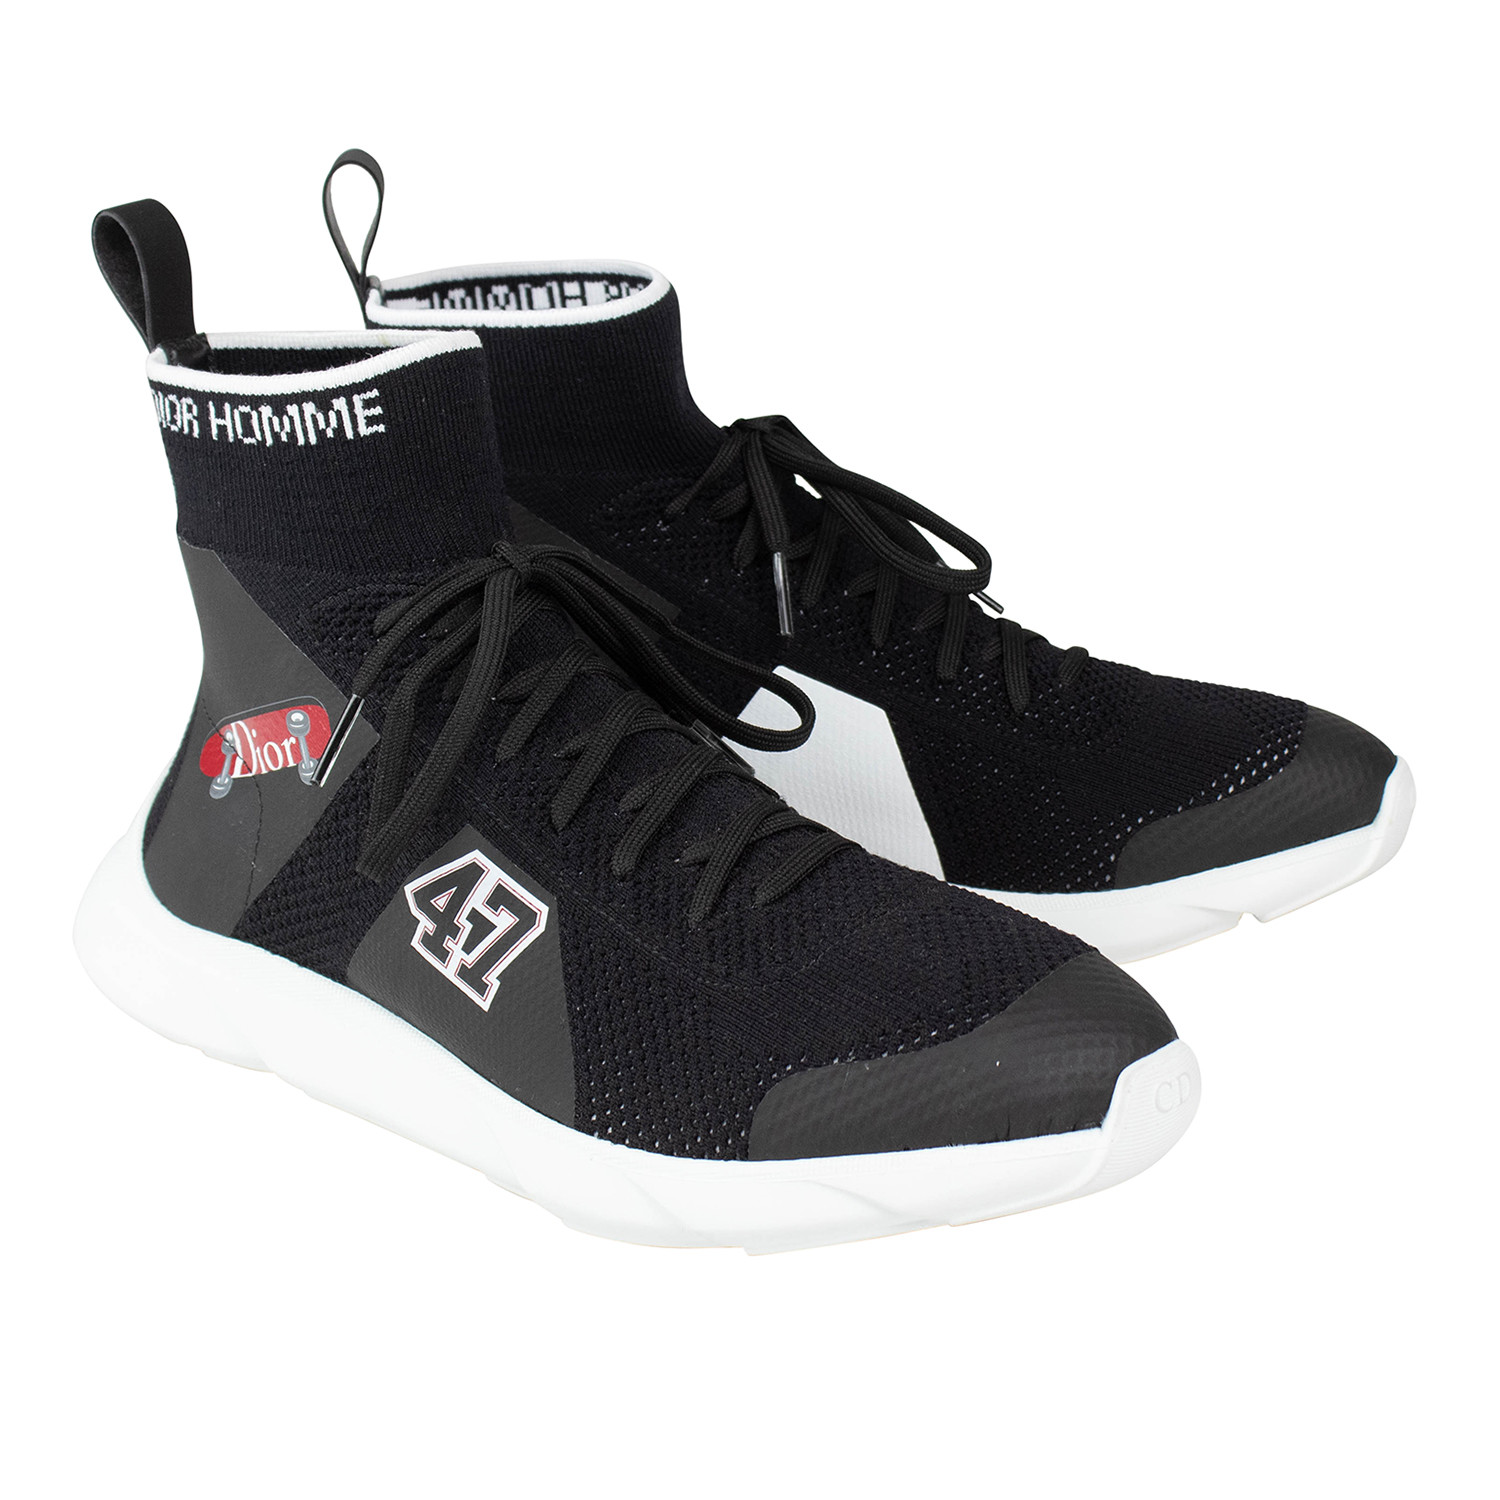 Dior Homme // Knit Lace Up B21 Sock